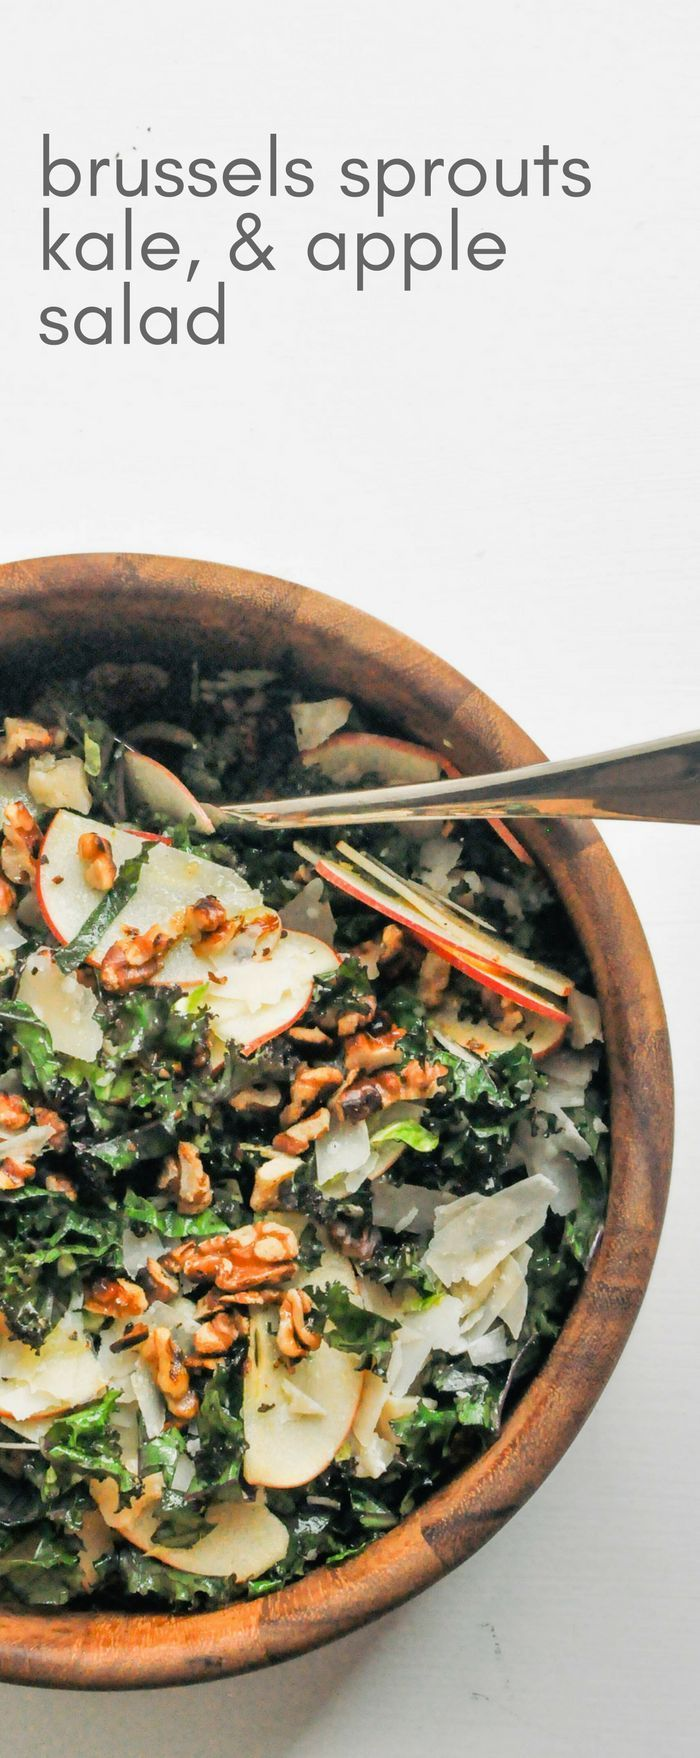 This shredded Brussels sprouts, kale, and apple salad is quick and easy to make! It's a delicious vegetarian side dish | This Healthy Table